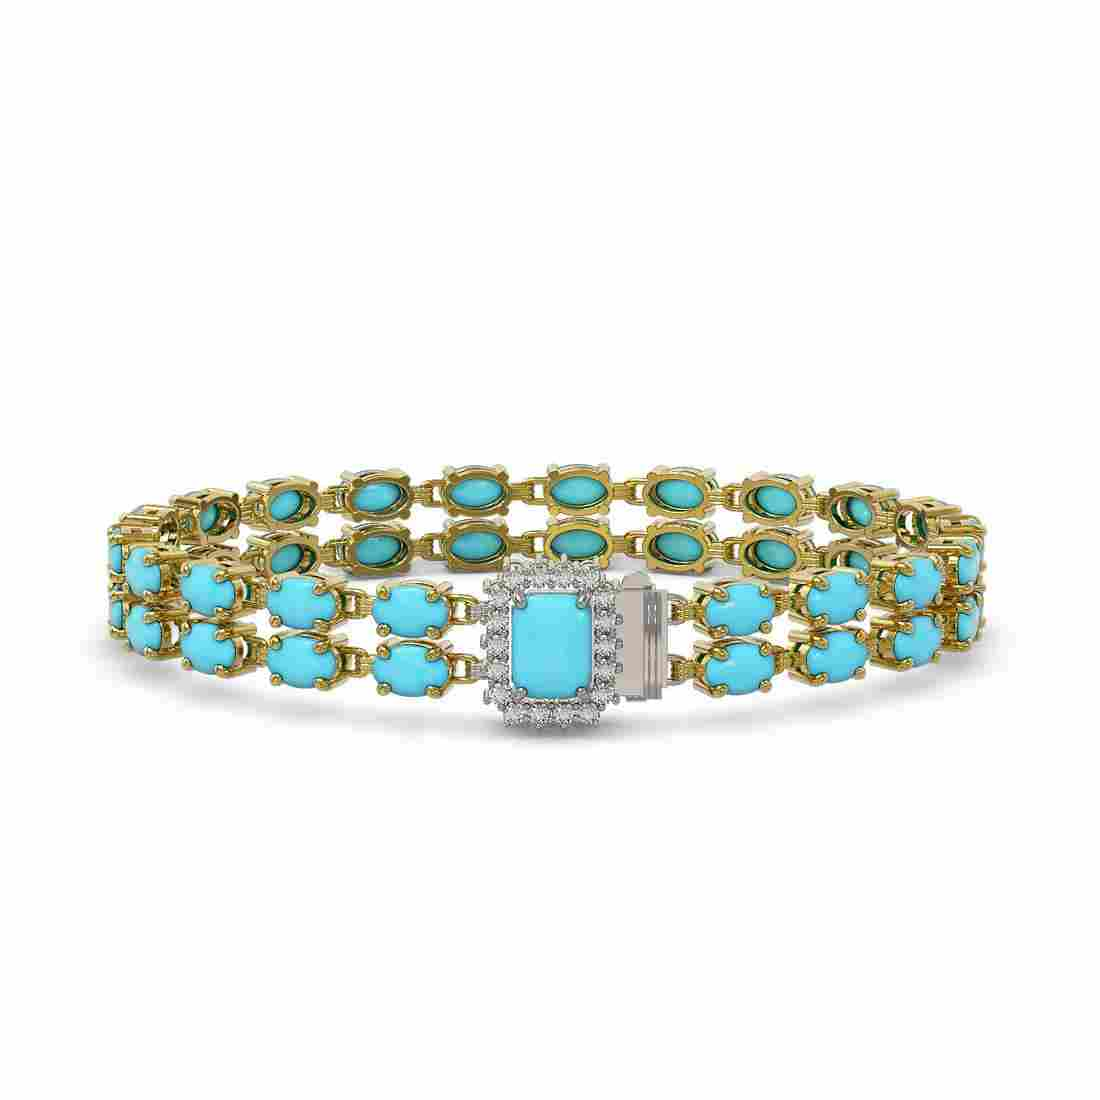 13.04 ctw Turquoise & Diamond Bracelet 14K Yellow Gold